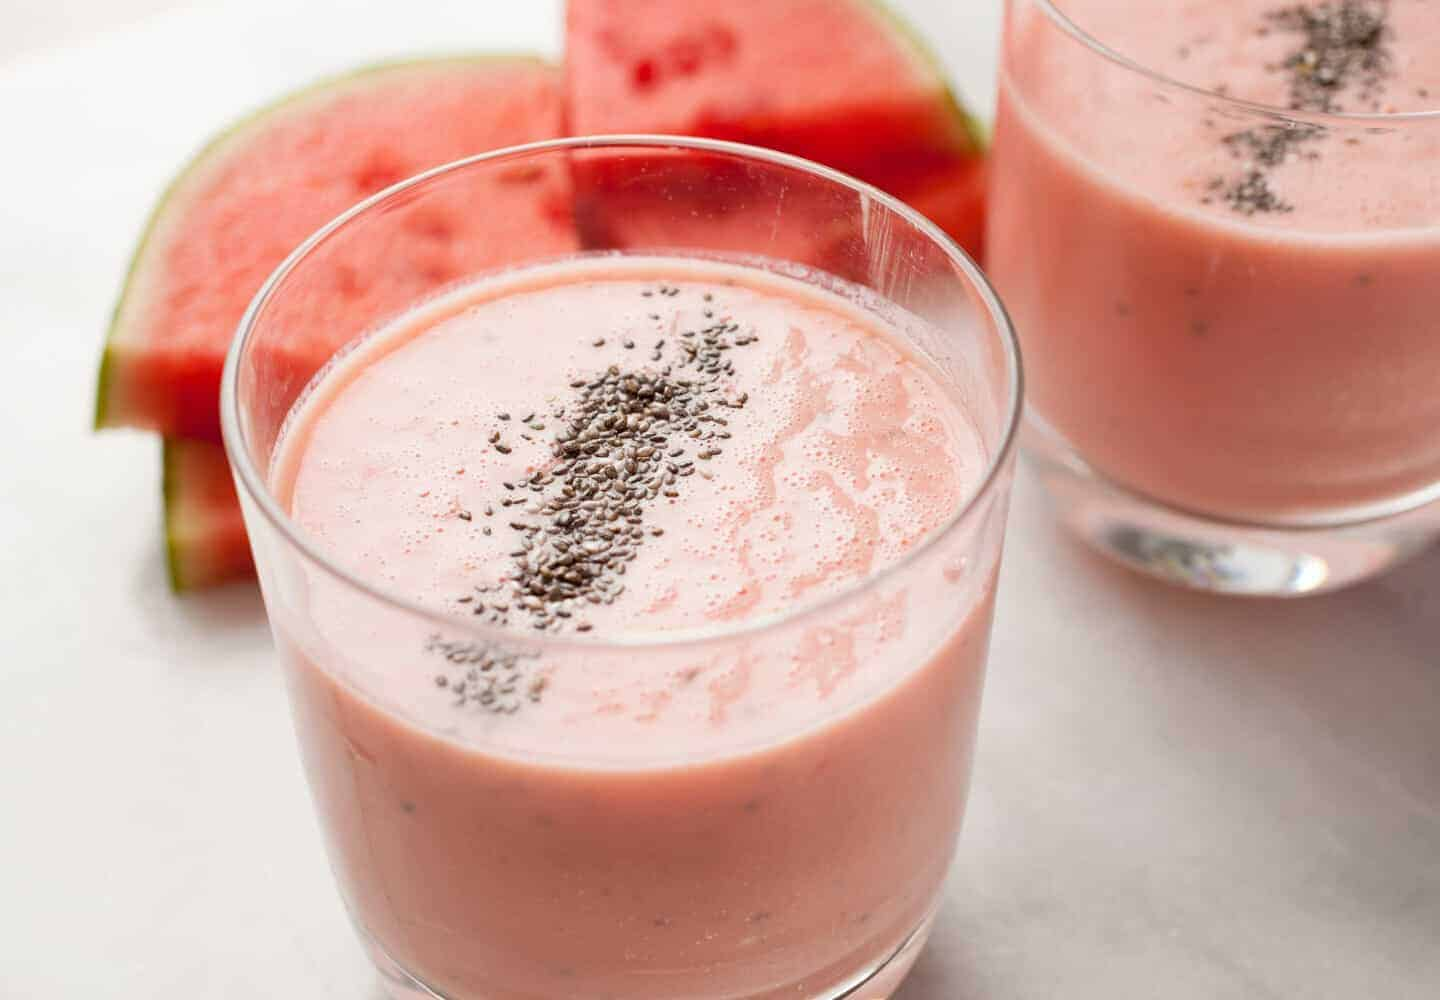 Creamy Watermelon Honey Smoothie: Light and refreshing, watermelon is the perfect base for a quick smoothie. This version gets some extra help from Greek yogurt, chia, and honey. So good! | macheesmo.com